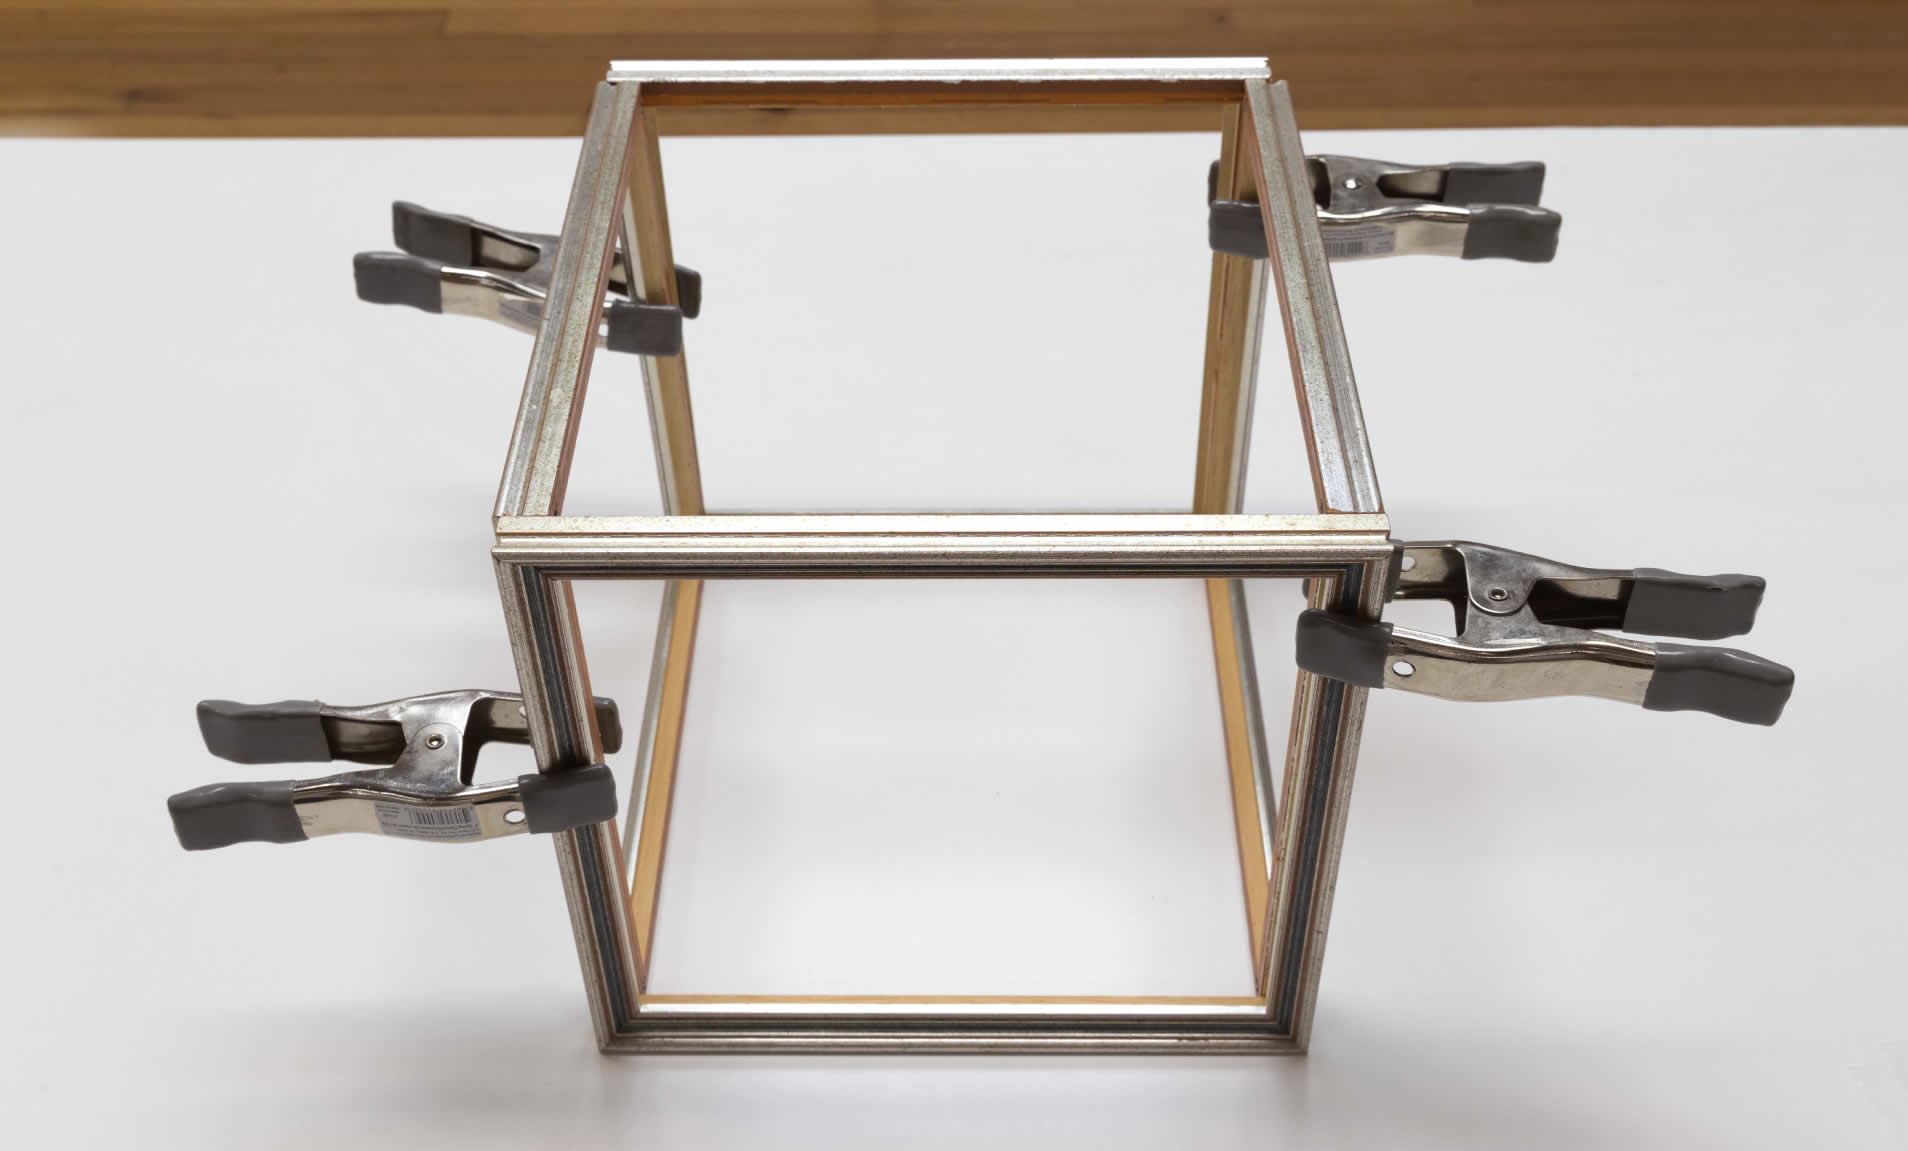 Step 2a of creating mini indoor greenhouse - clamp 4 of the frames together in the shape of a cube